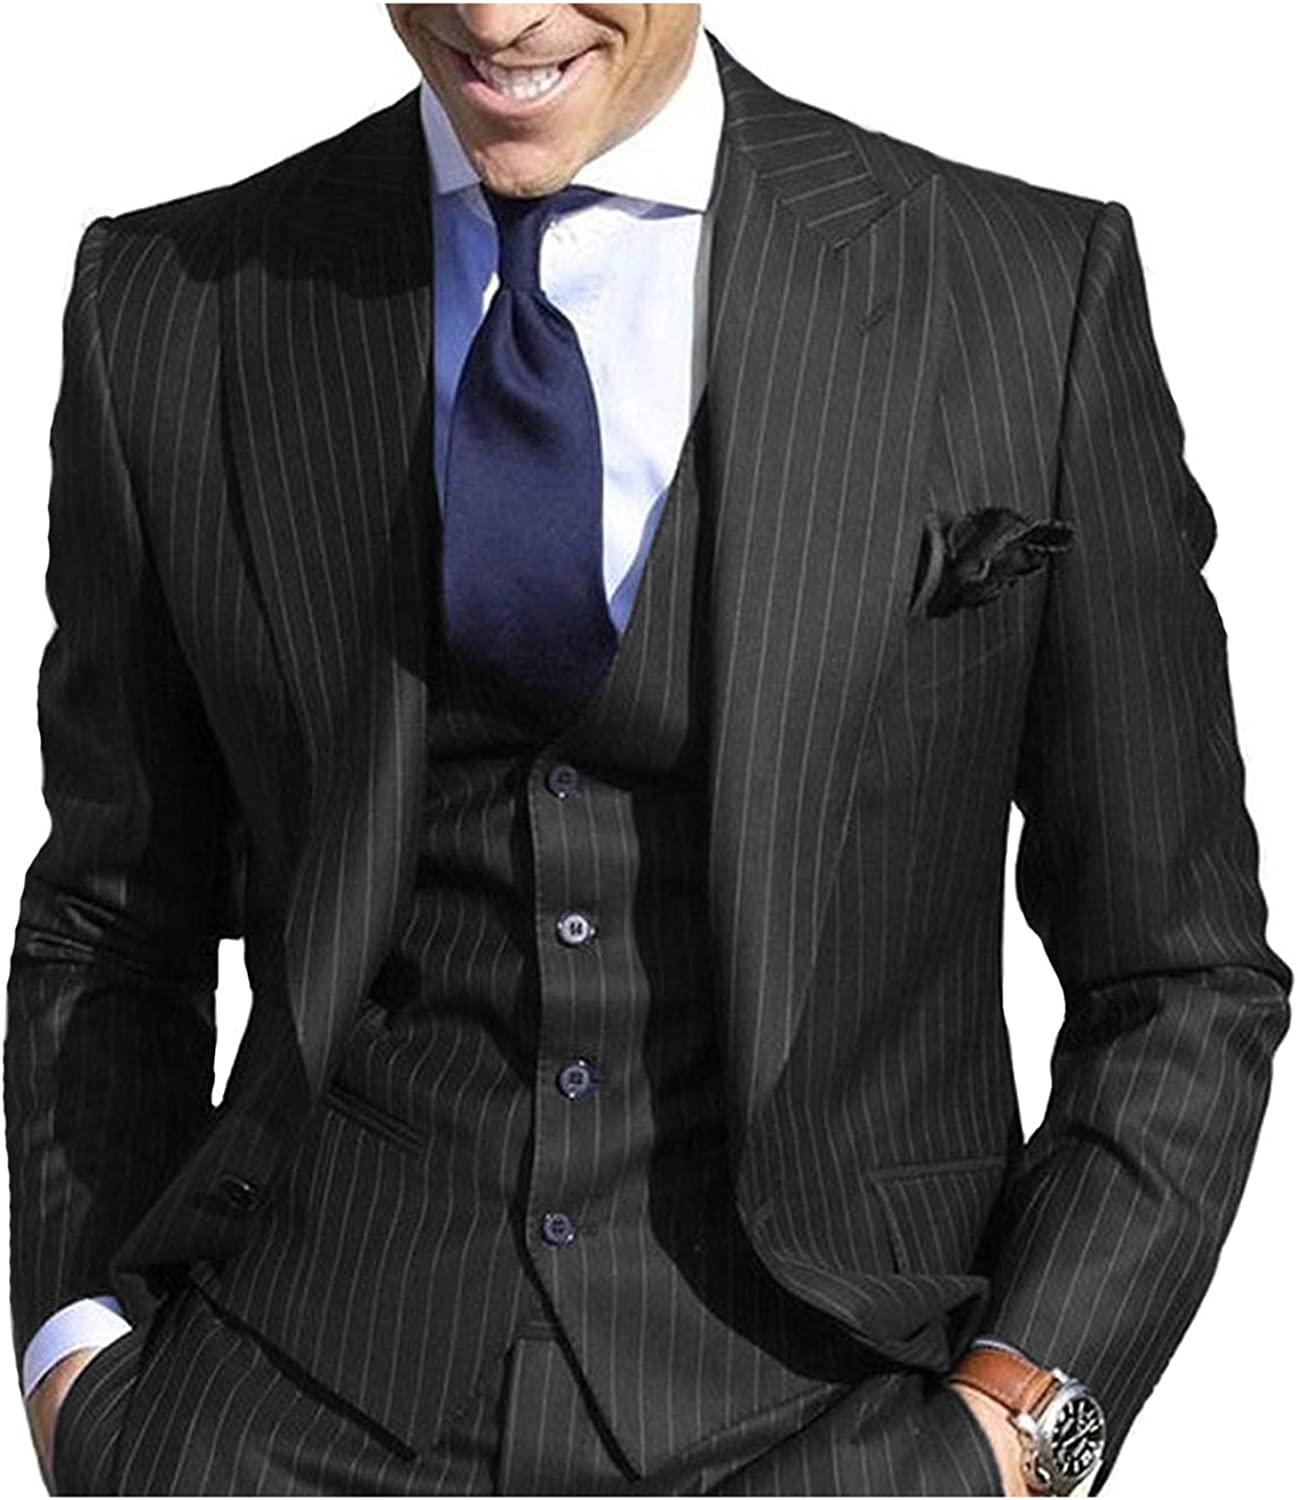 JYDress Men's Pinstripe Suit Slim Stripe Fit Spring new work one after another Jacket Lapel Superior Peaked